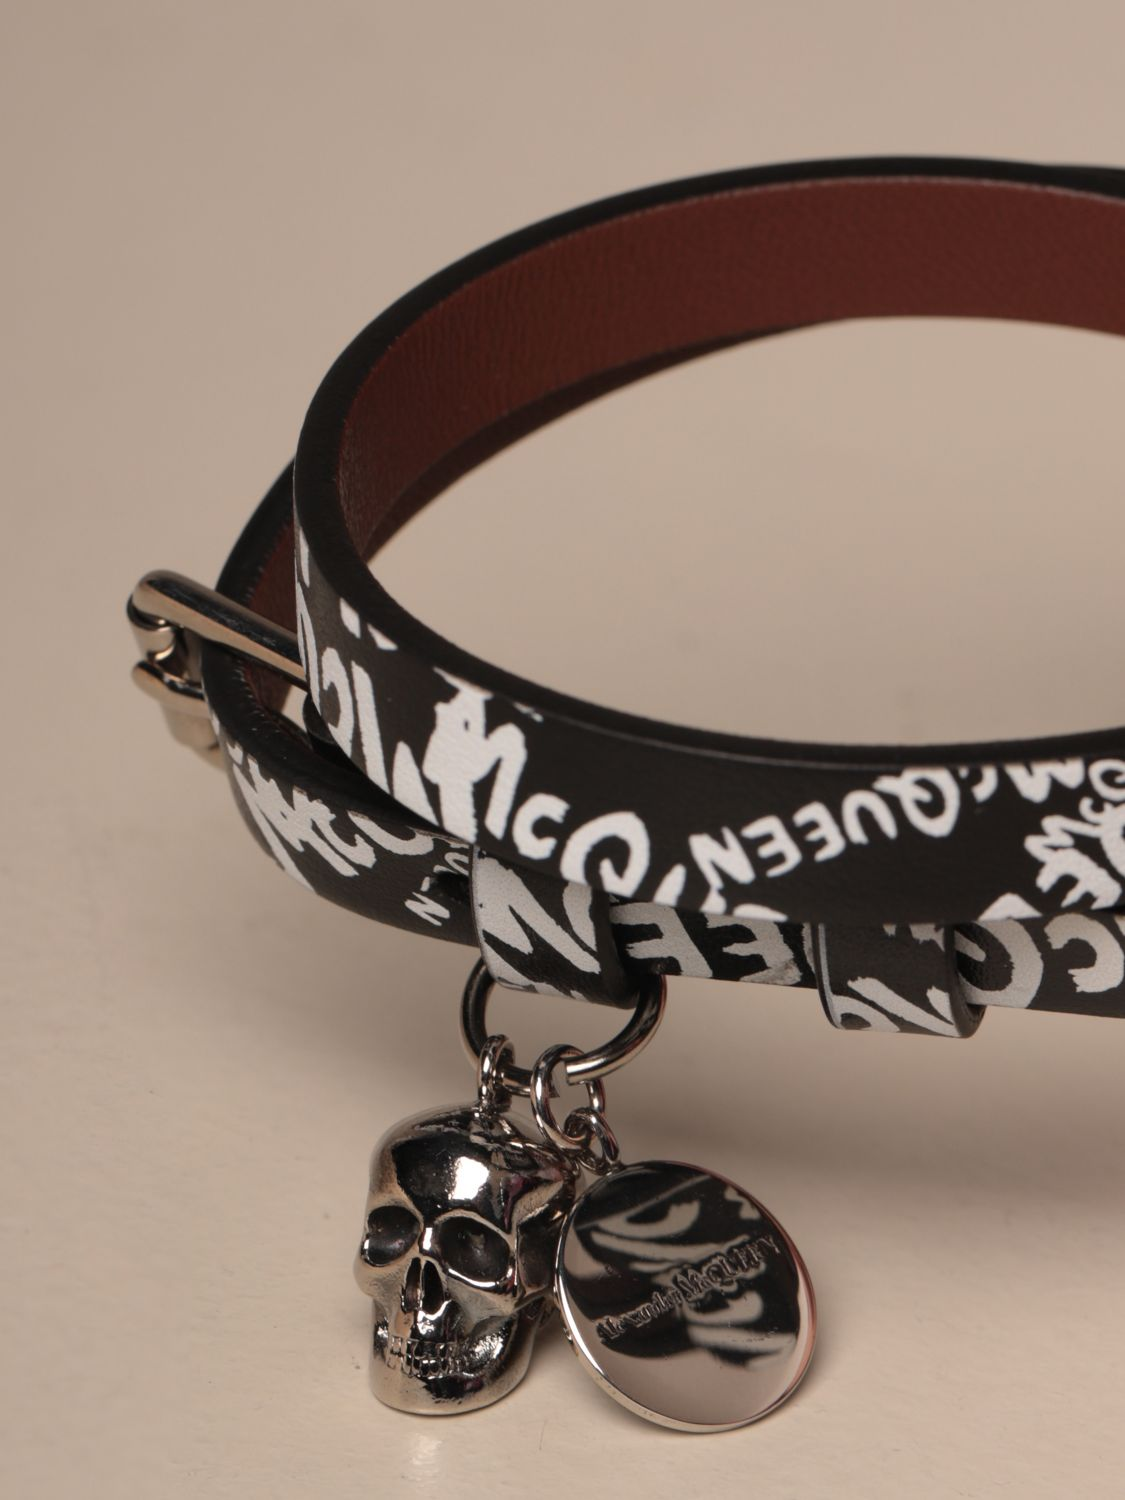 Jewel Mcq Mcqueen: Mcq McQueen leather bracelet with all over logo black 2